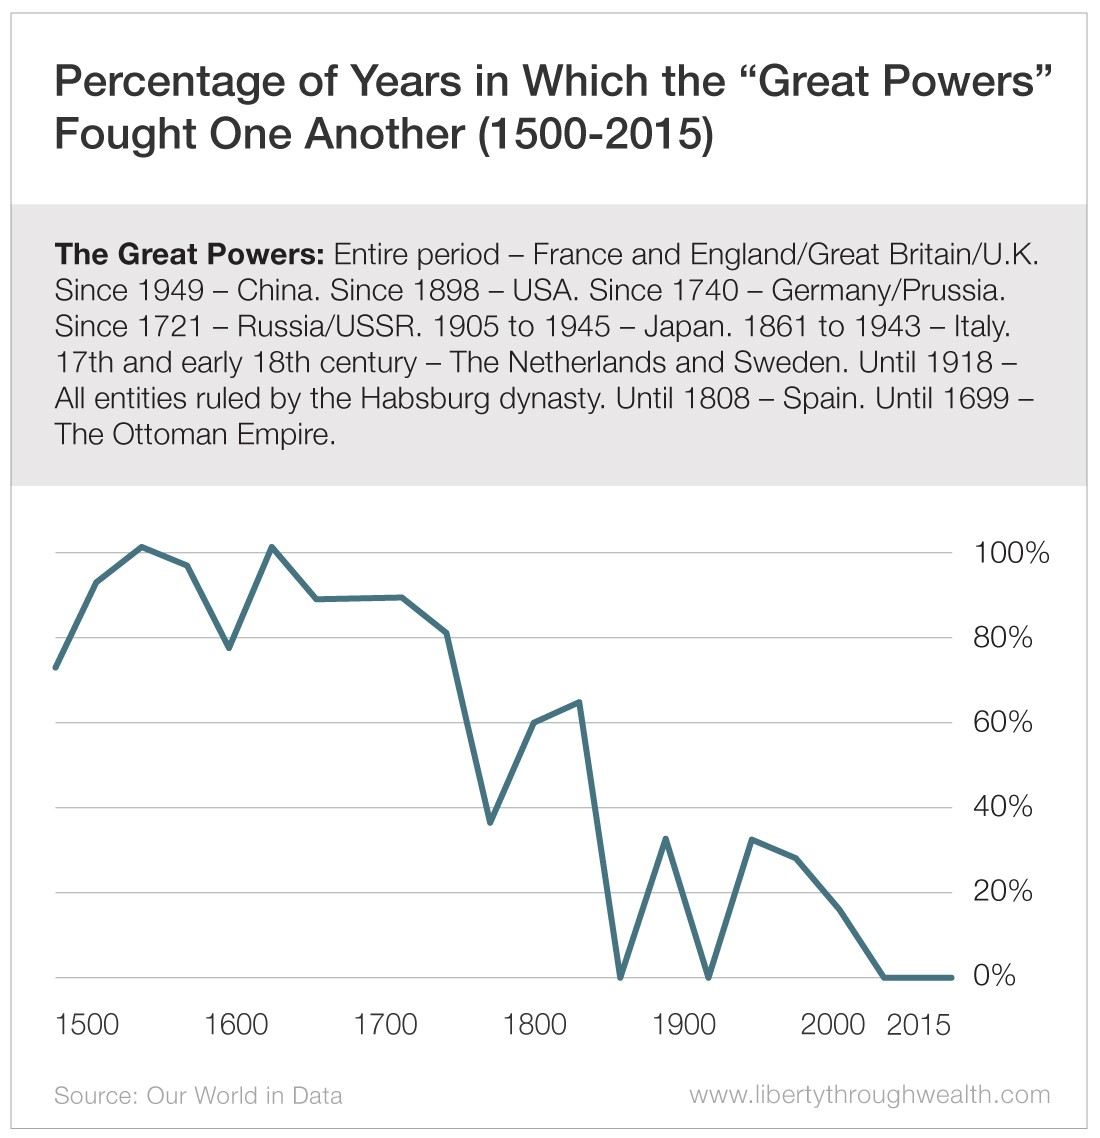 Percentage of Years in Which the Great Powers Fought One Another